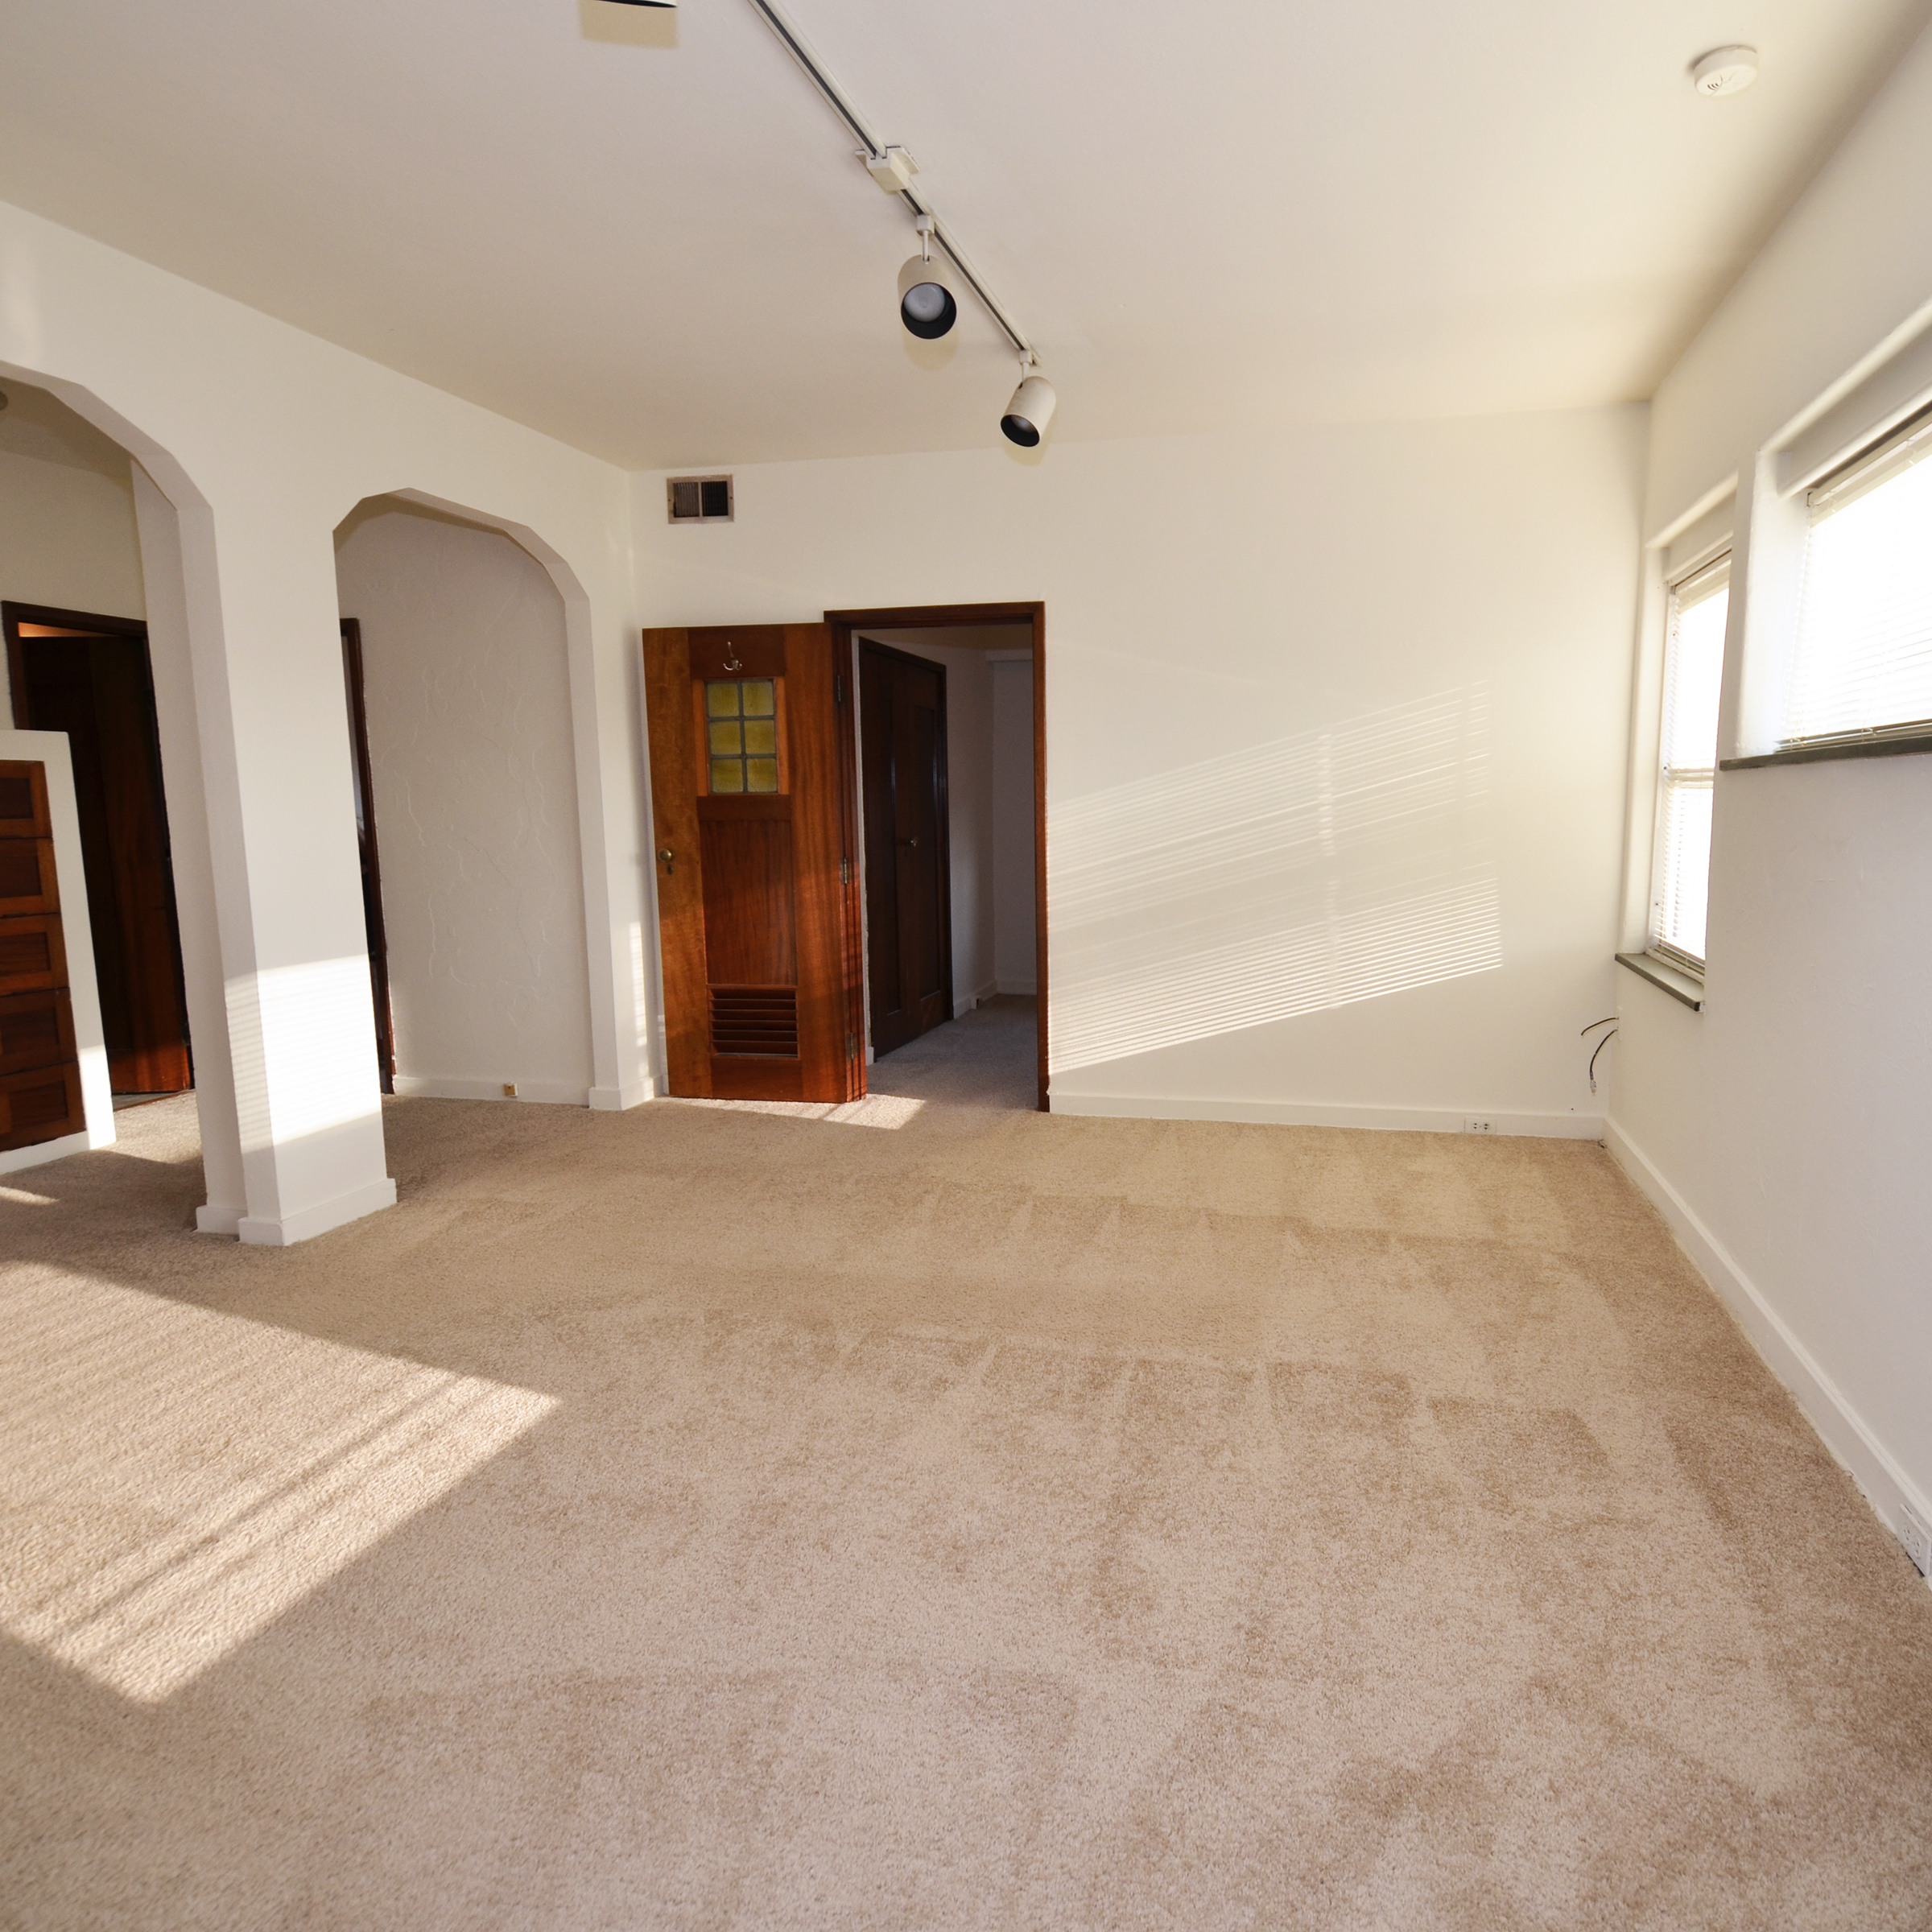 interior of 342 S. Highland Ave, Apt. 14B 1